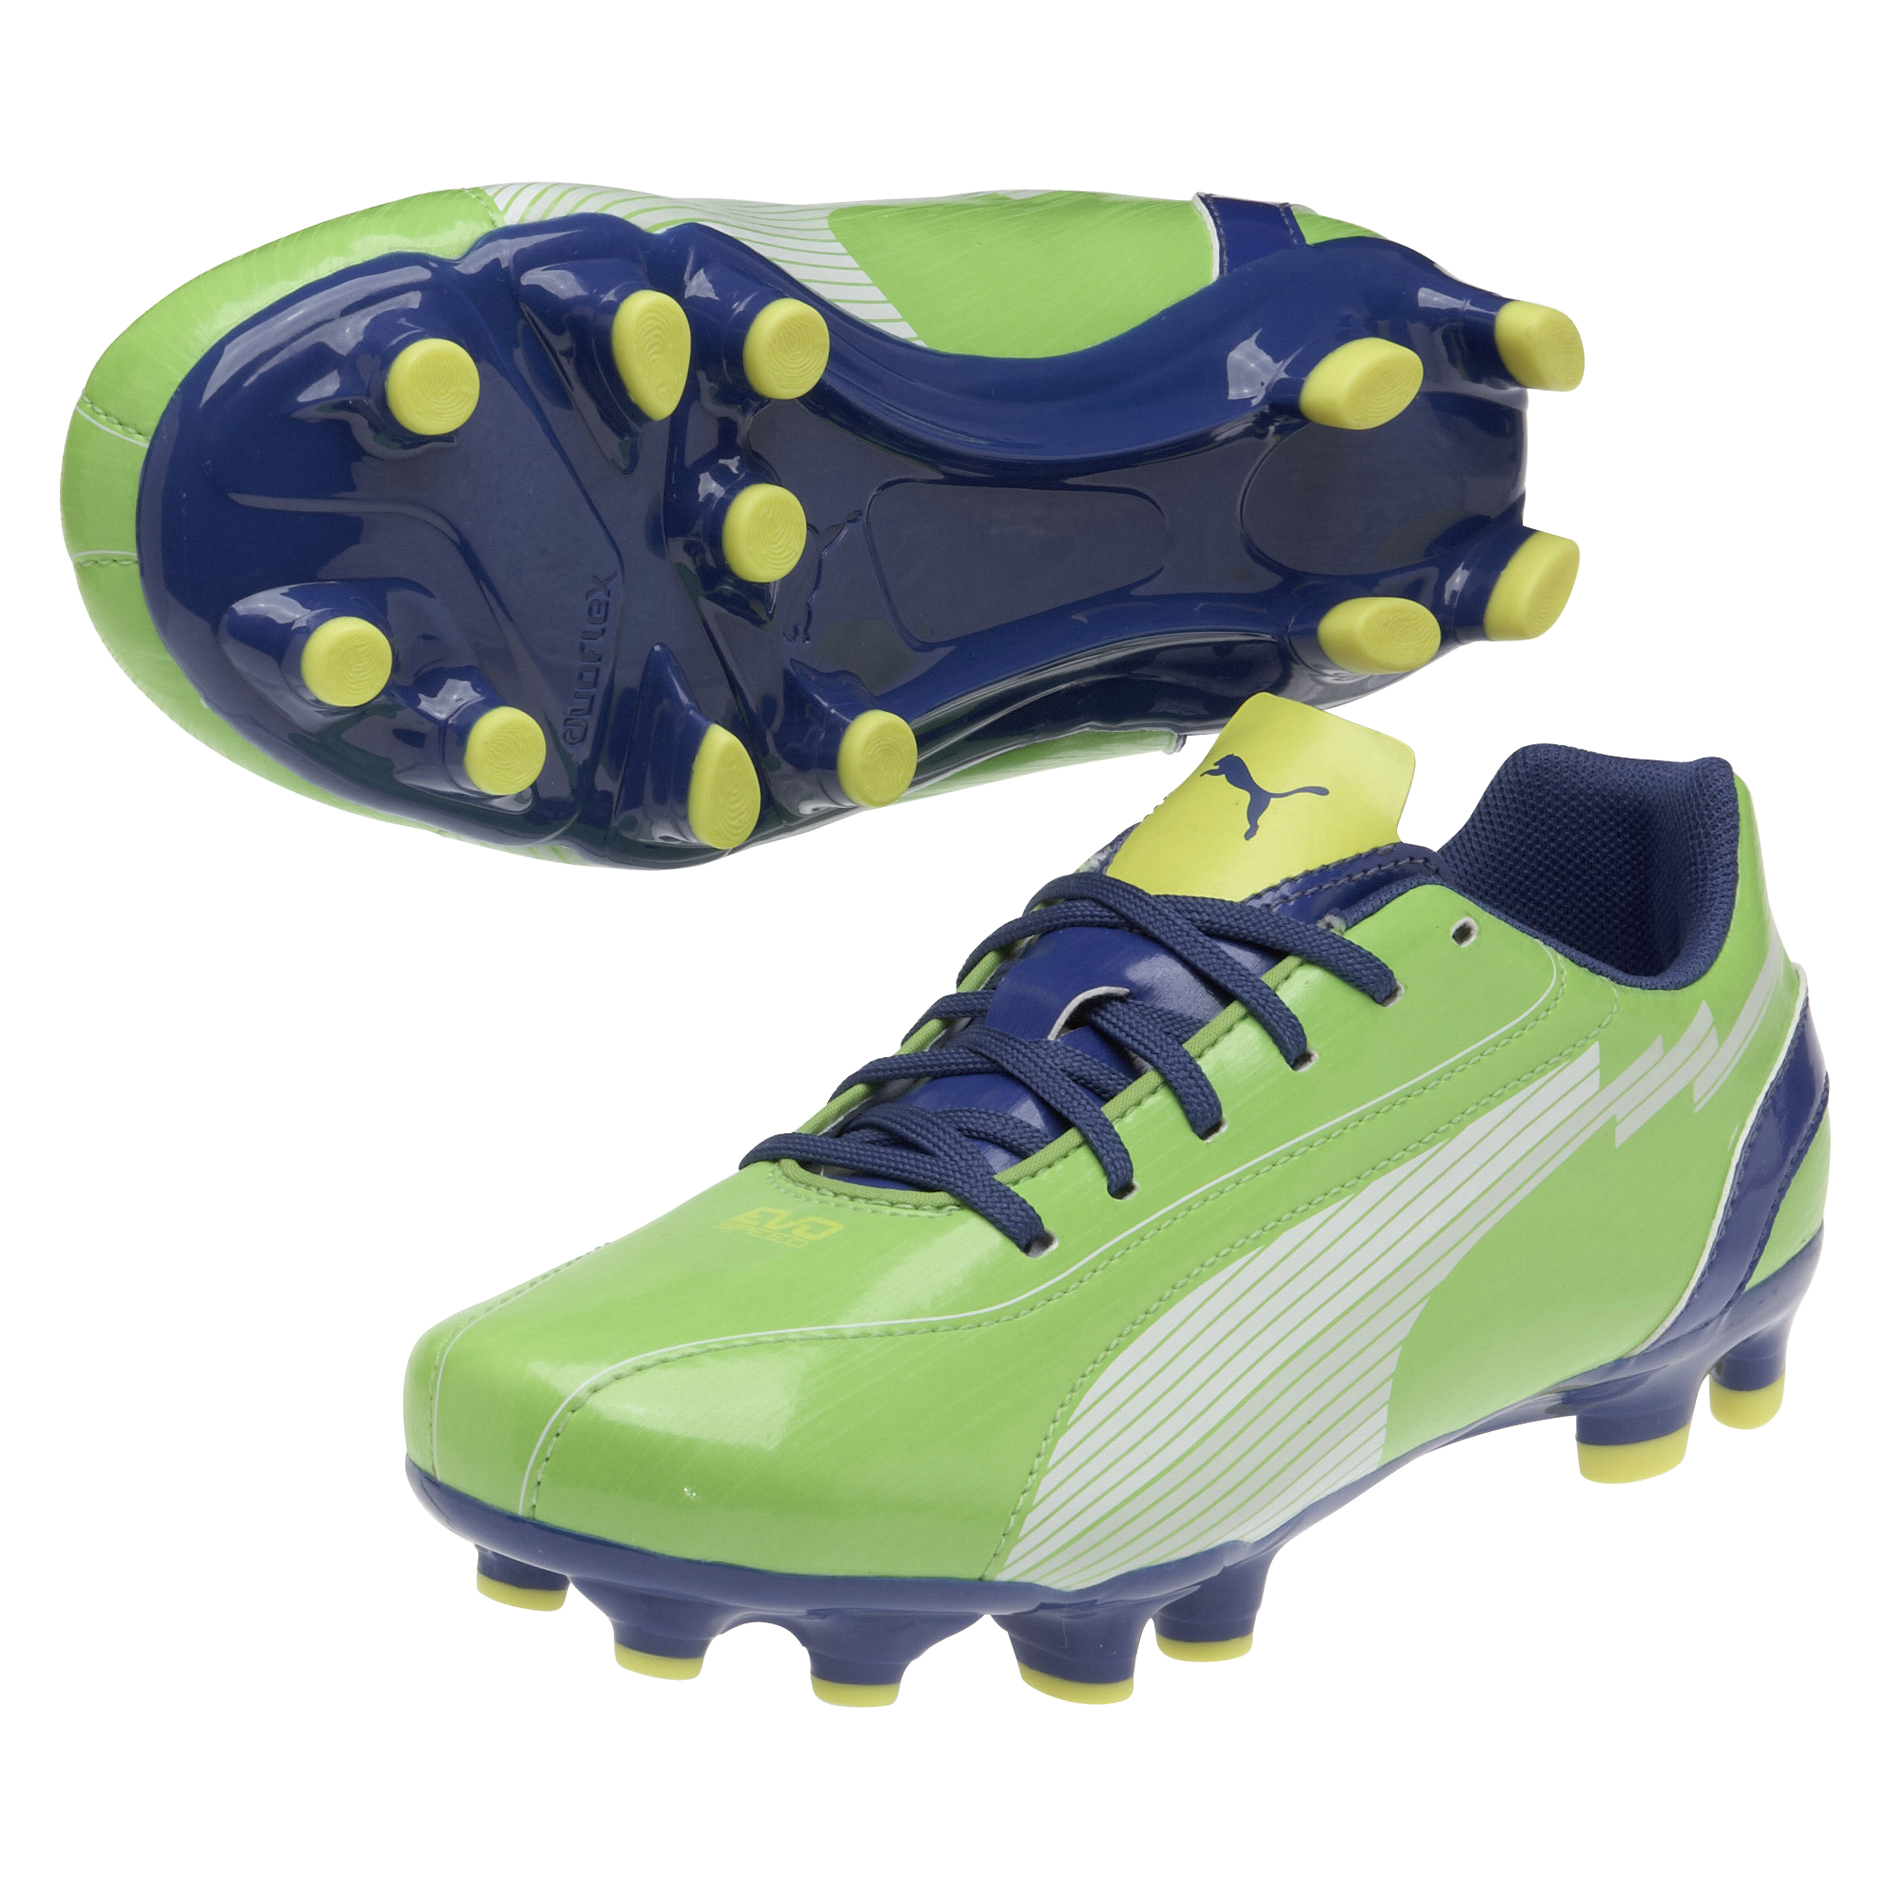 Puma evoSPEED 5 Firm Ground Football Boots - Jasmine Green/White/Monaco Blue/Fluo Yellow - Kids